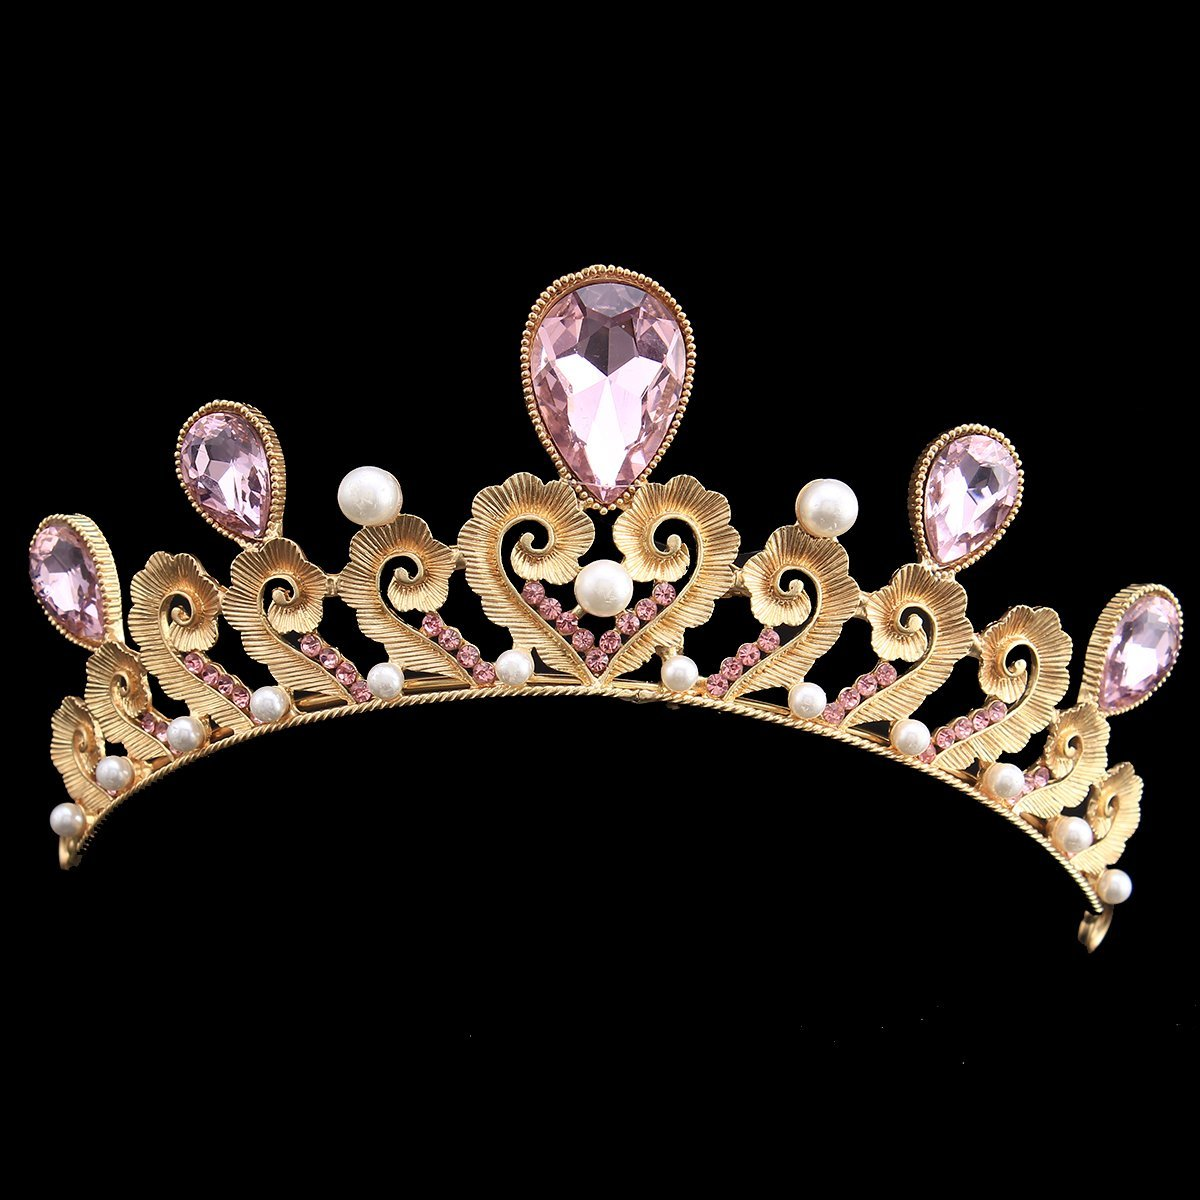 FUMUD Wedding Tiaras Crowns for Bridal Rhinestones Crystal Pearl Hair Accessories Jewelry Sparkling Princess Queen Pageant (Gold)